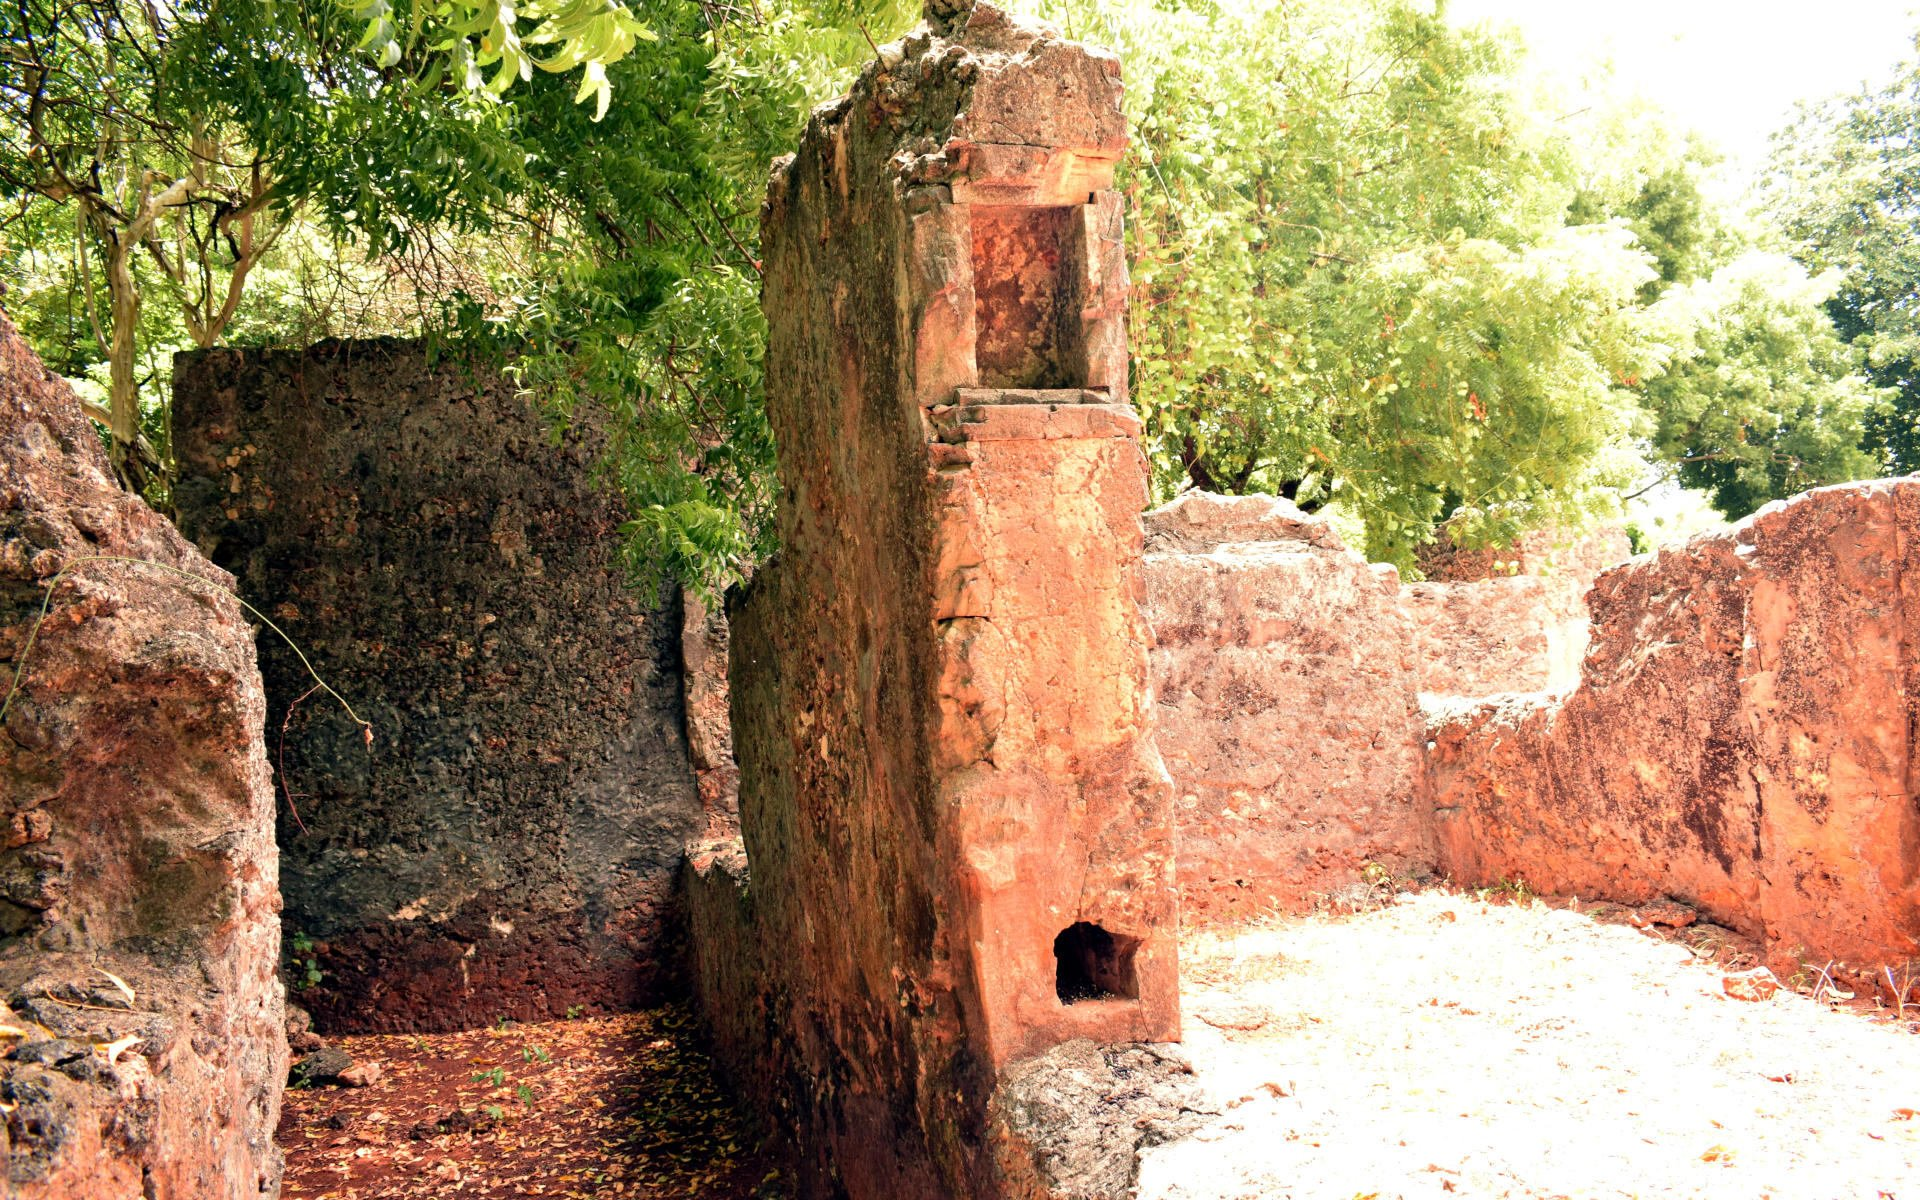 In Kilifi County, about 15 kilometres from Mombasa lies this famous tourist attraction site called Jumba la Mtwana. The name directly translated means 'the large house of the slave.' Why the ruins go by this name is unclear.